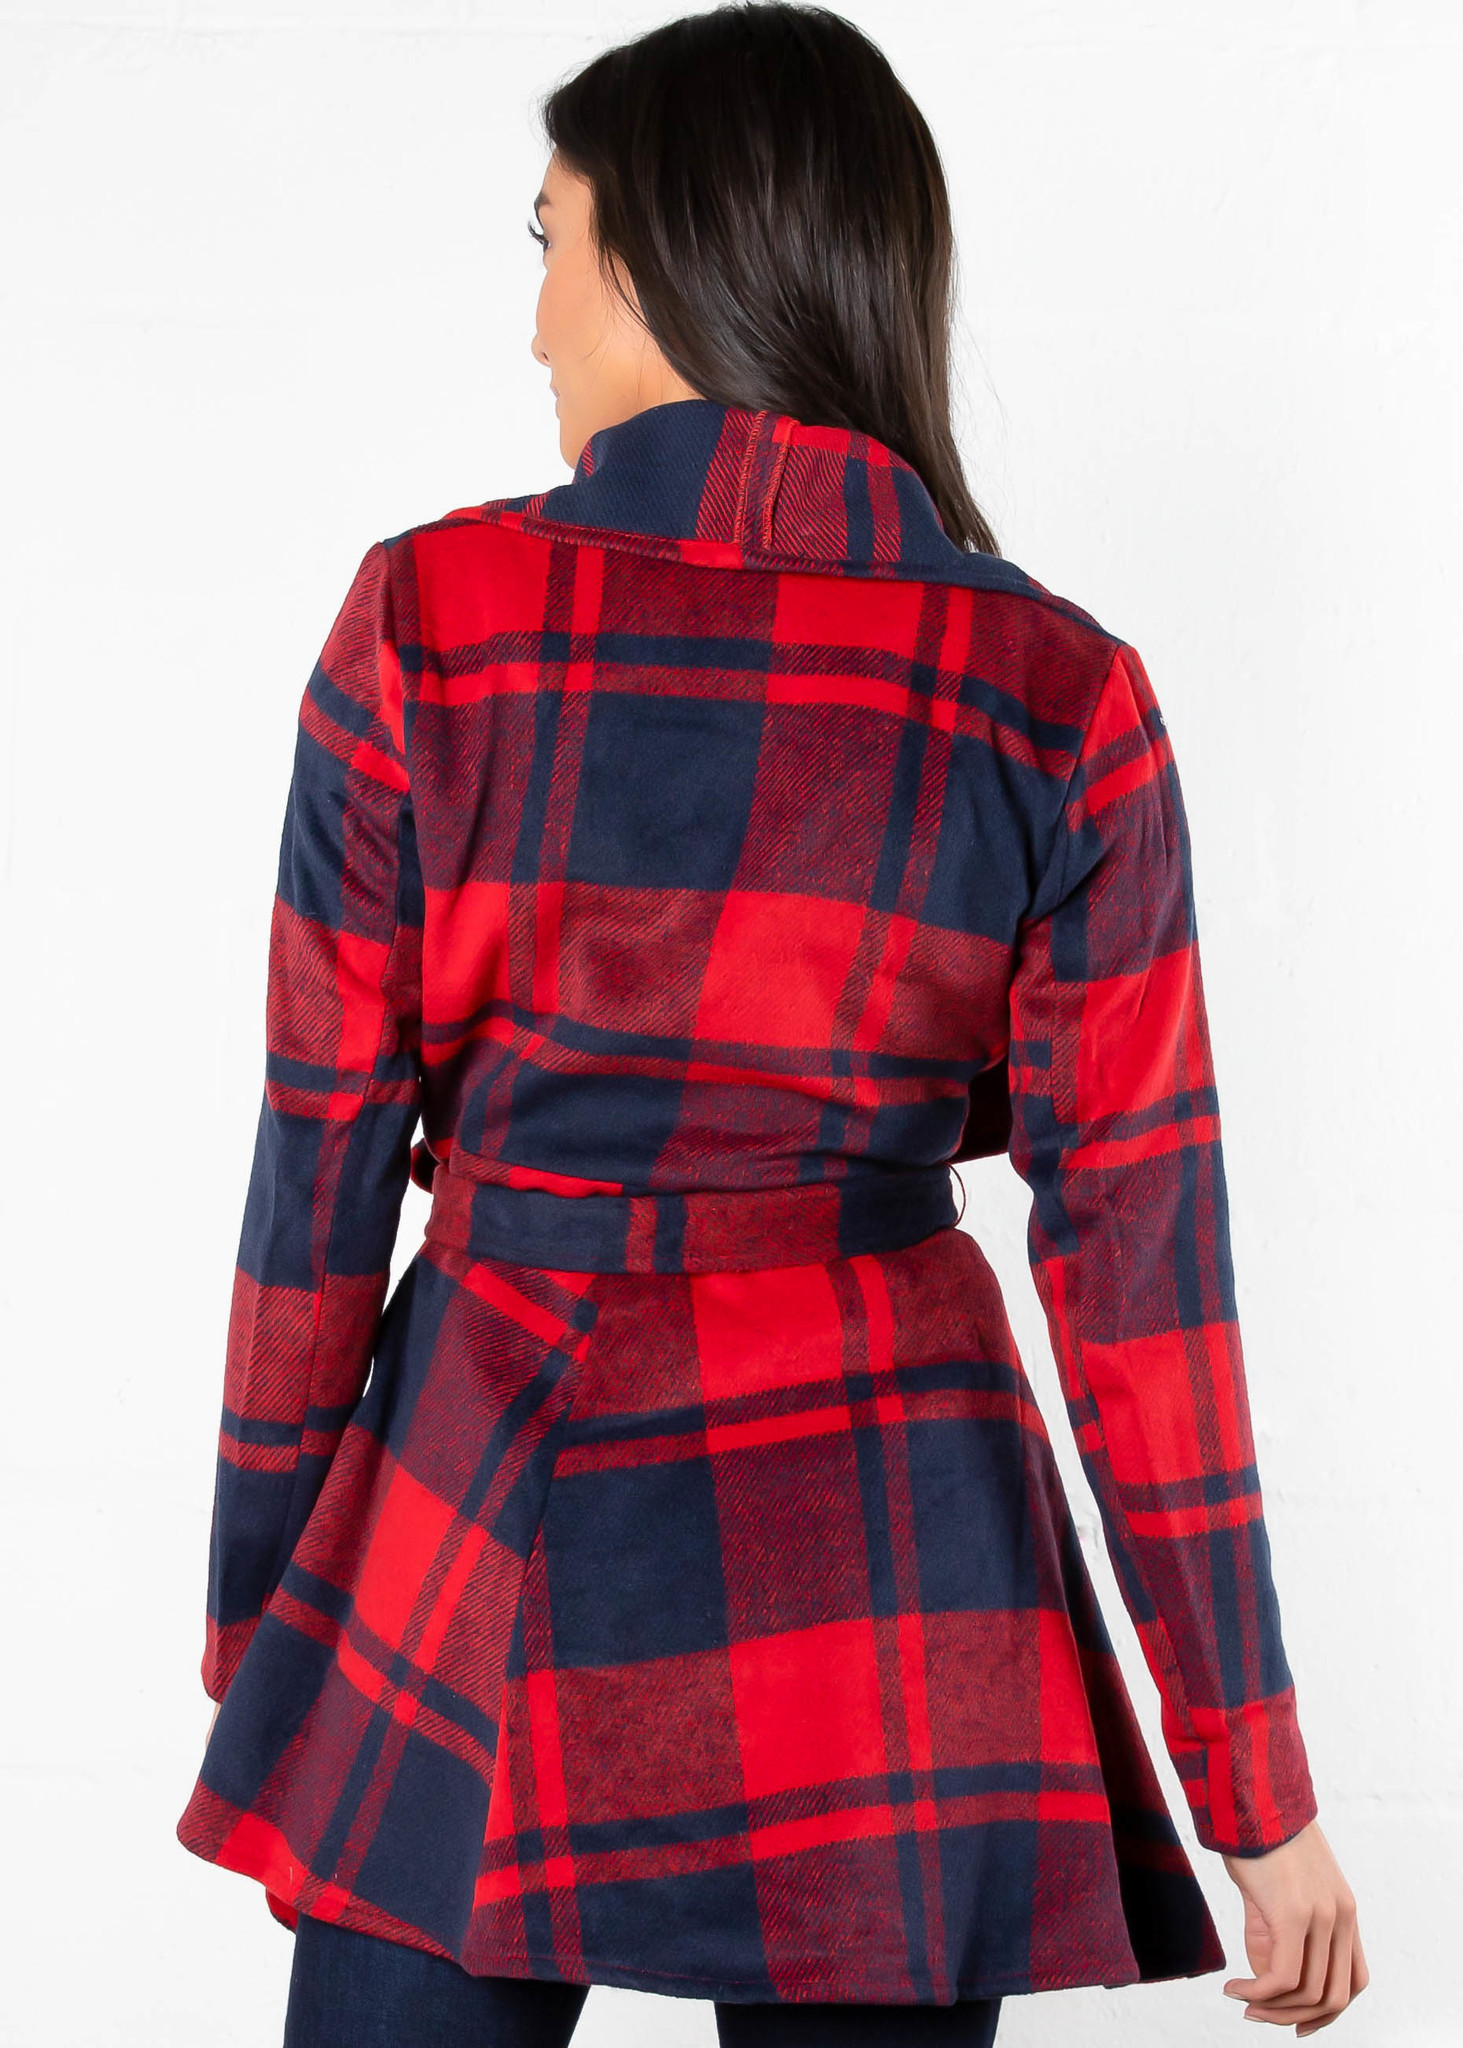 GOOD TIDDINGS PLAID JACKET